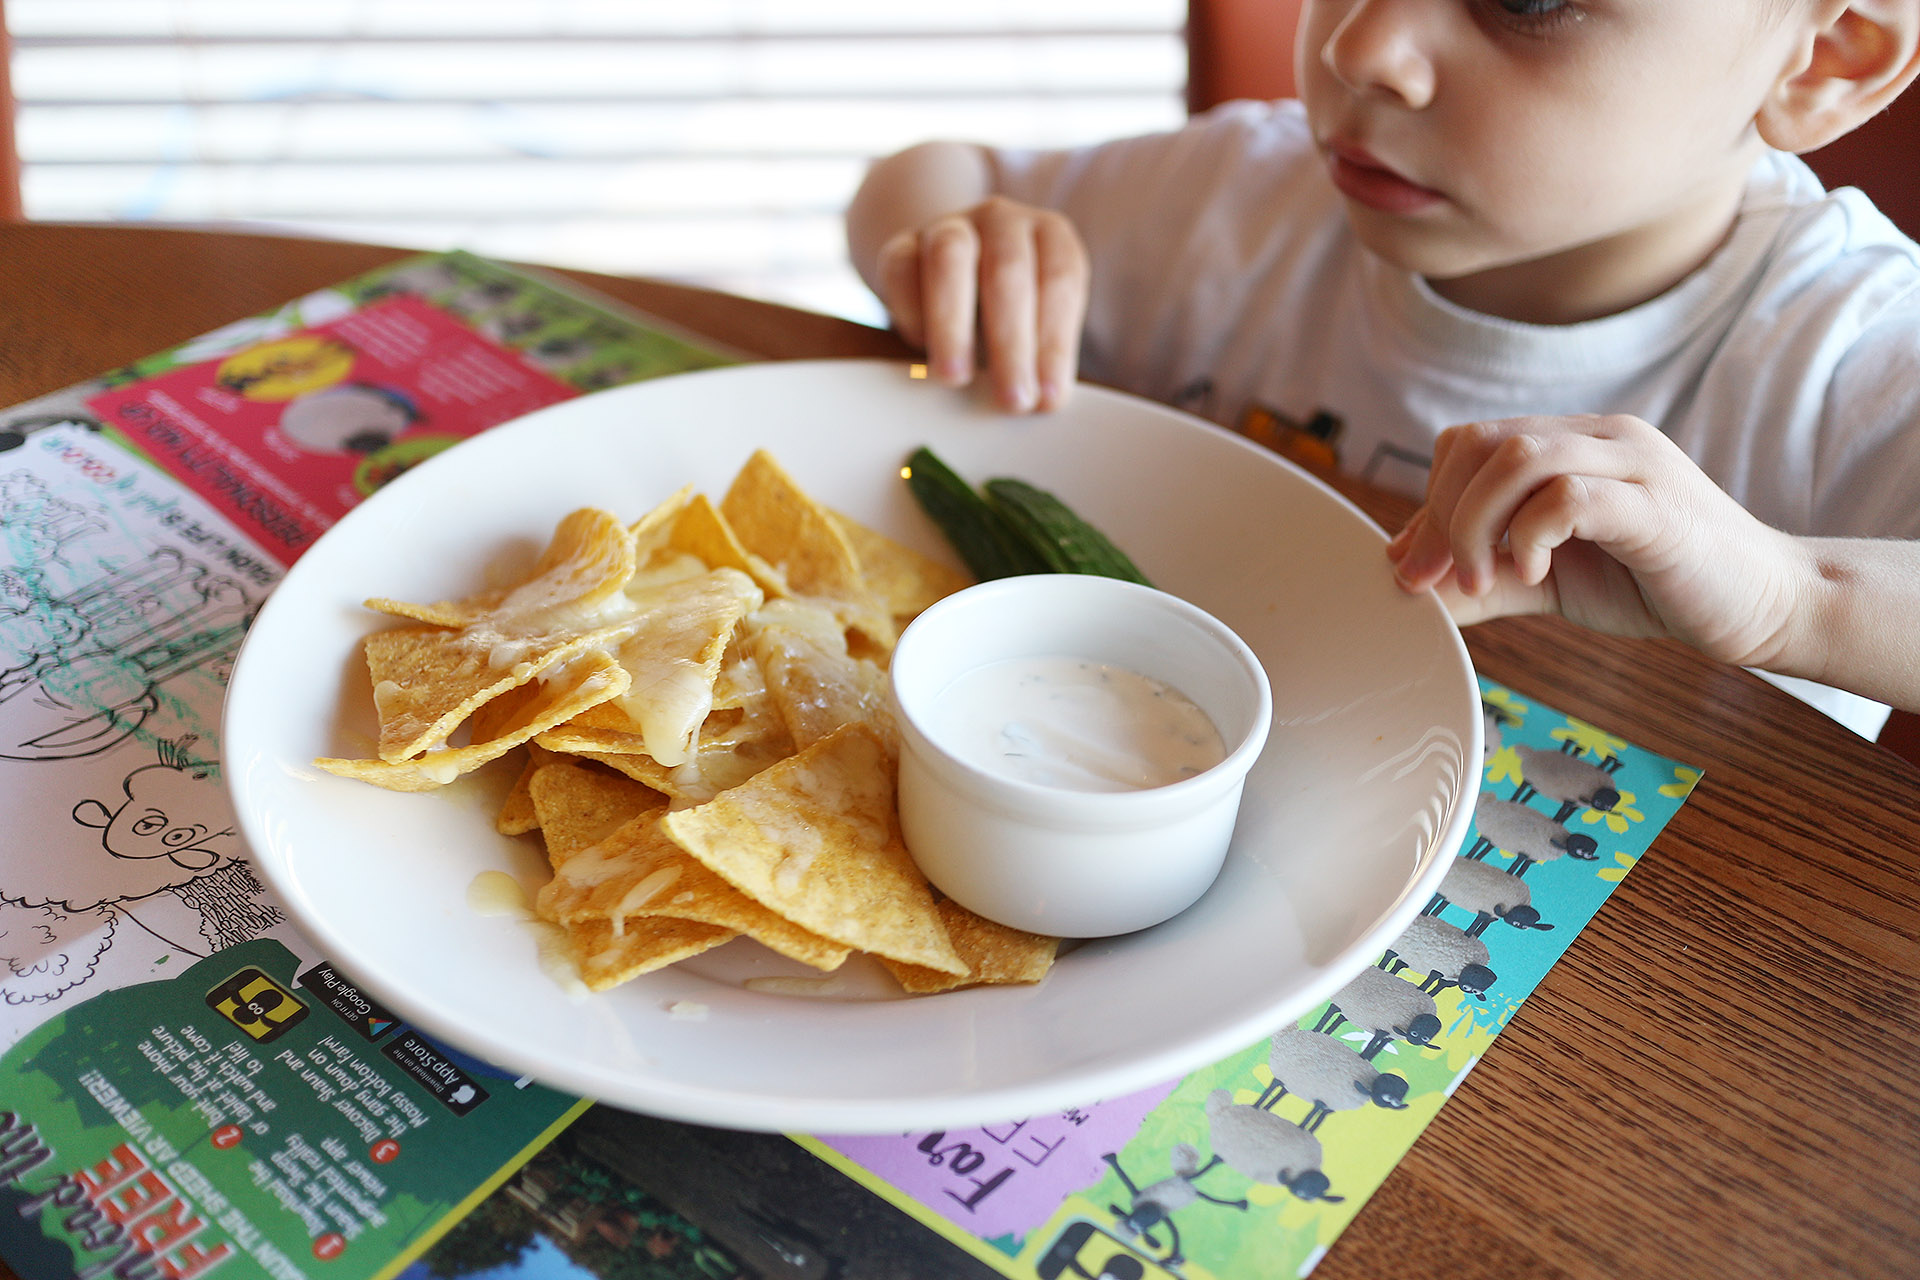 Fussy eating in toddlers - an update on how our preschooler is doing with his fussy eating